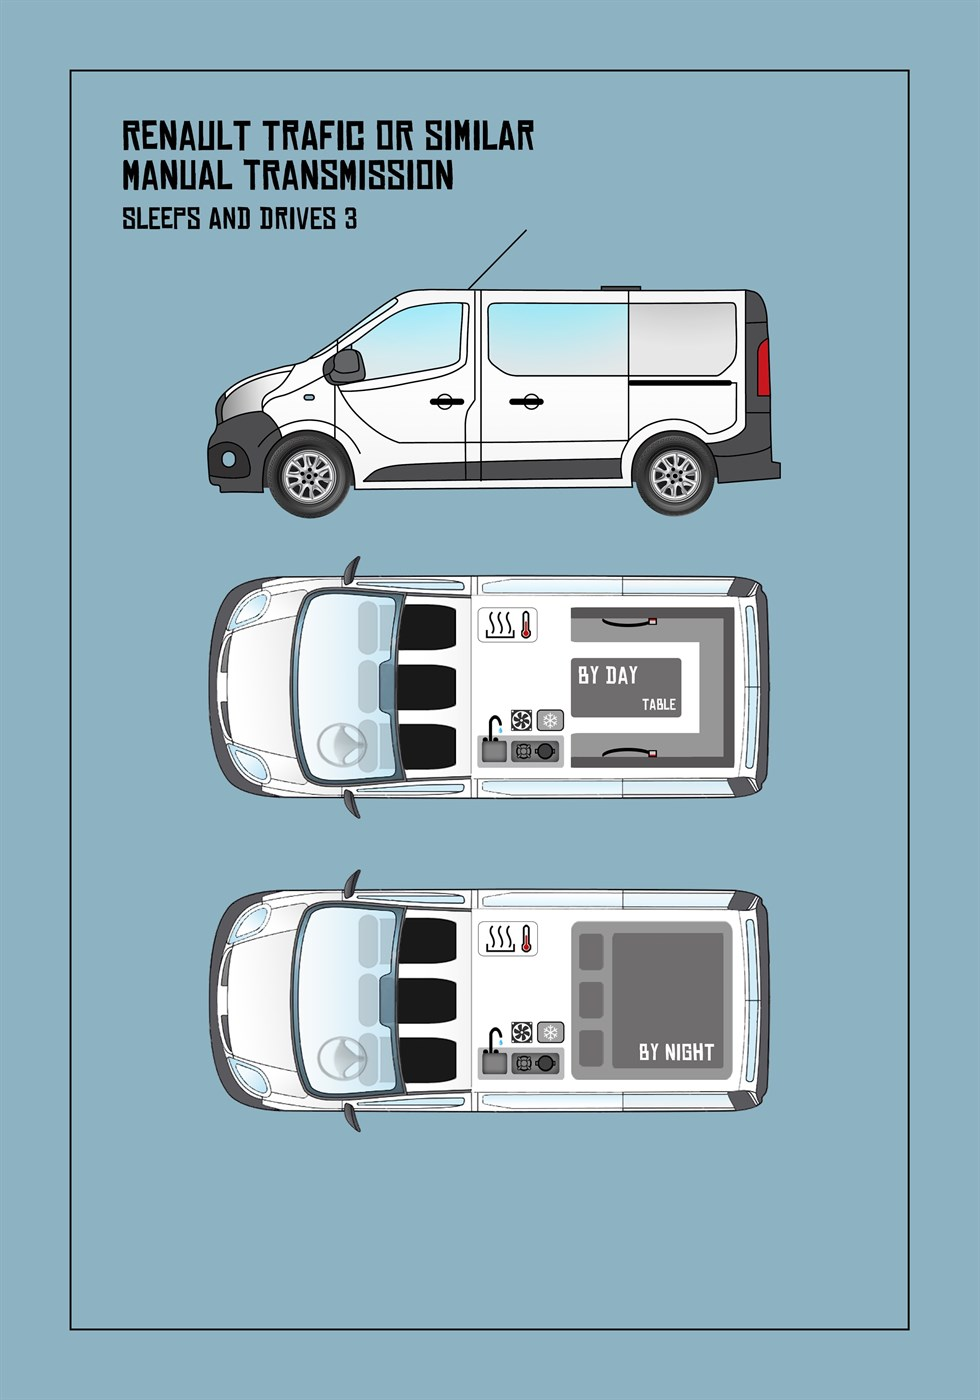 Campervan For Three Friends On Their Road Trip In Iceland